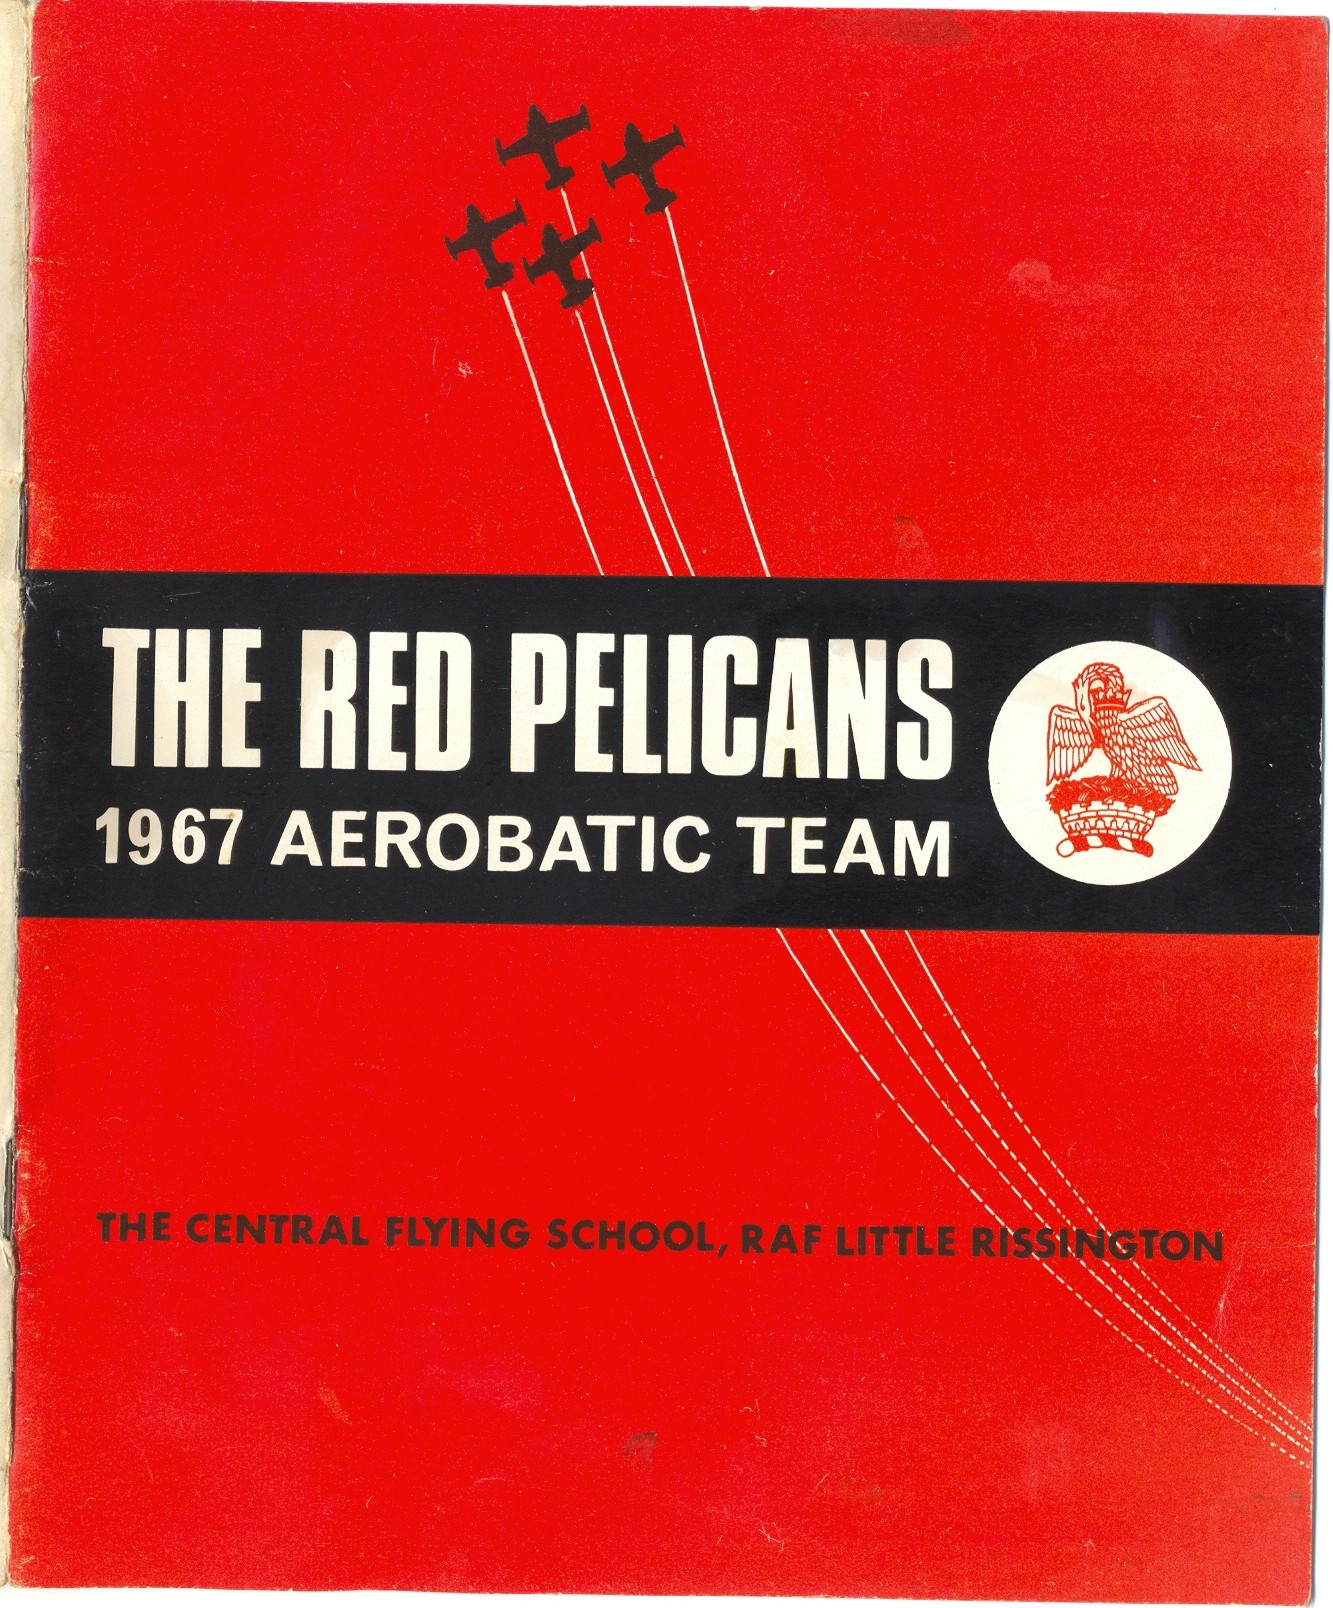 Red Pelican 1967 front cover of the brochure